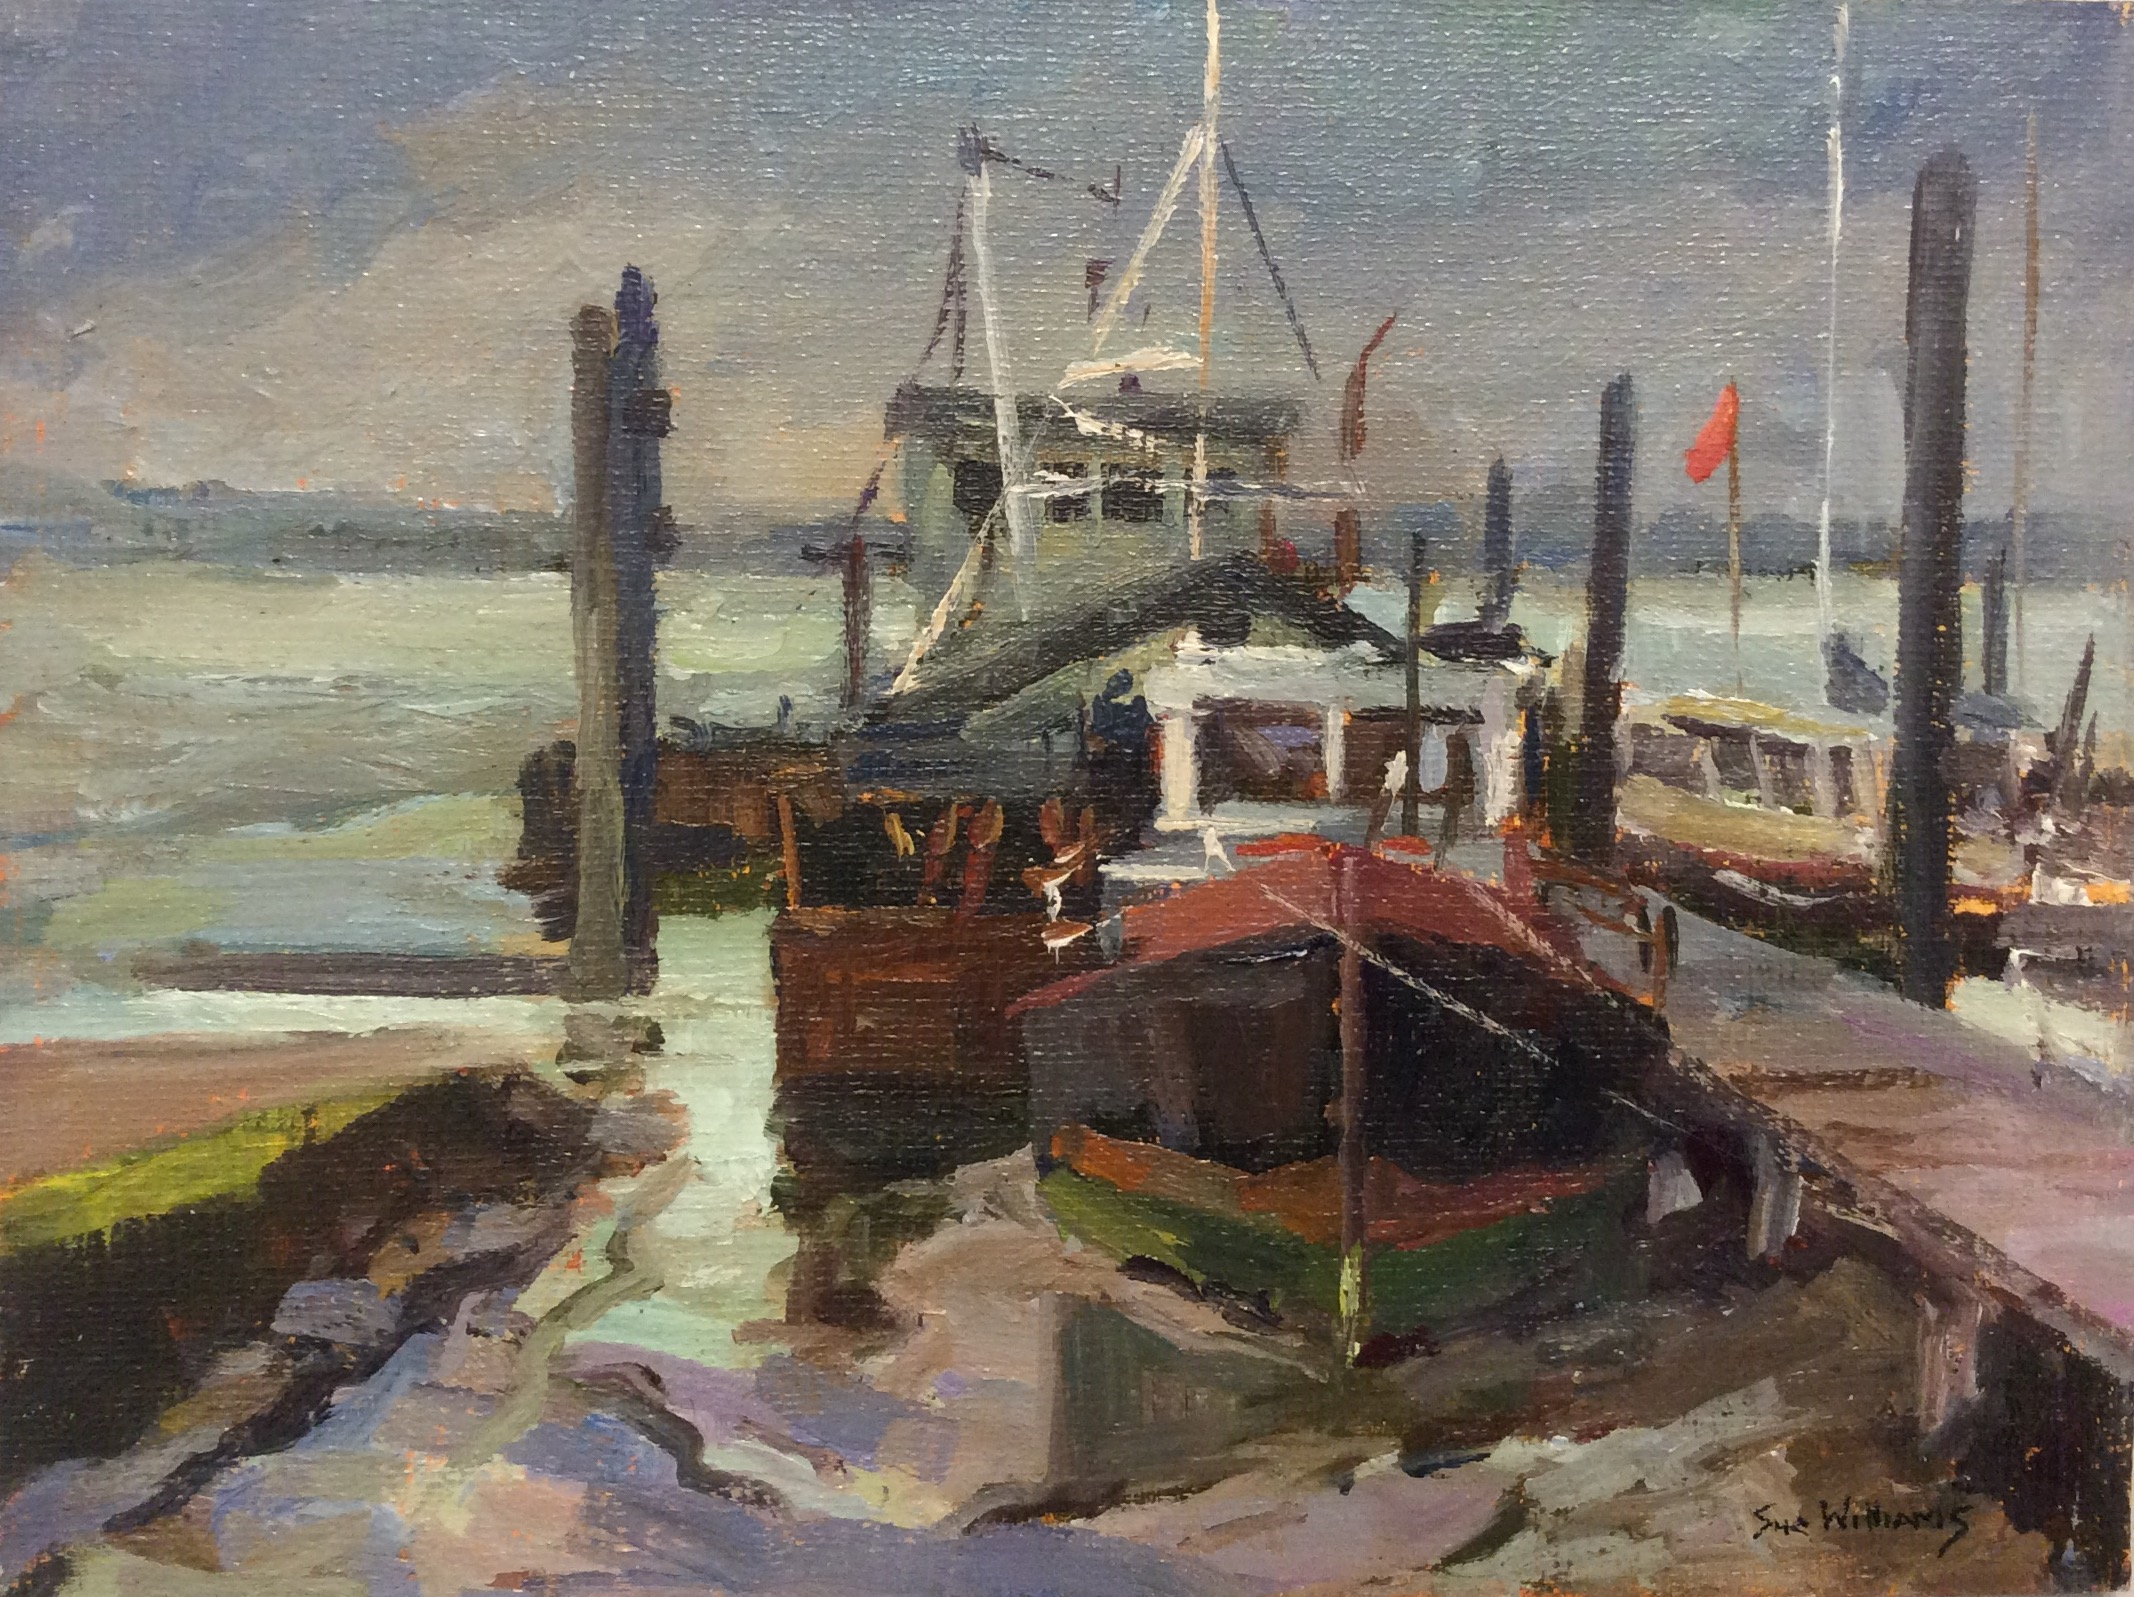 GREY DAY AT MAYLANDSEA: 6 x 8 in: Oil